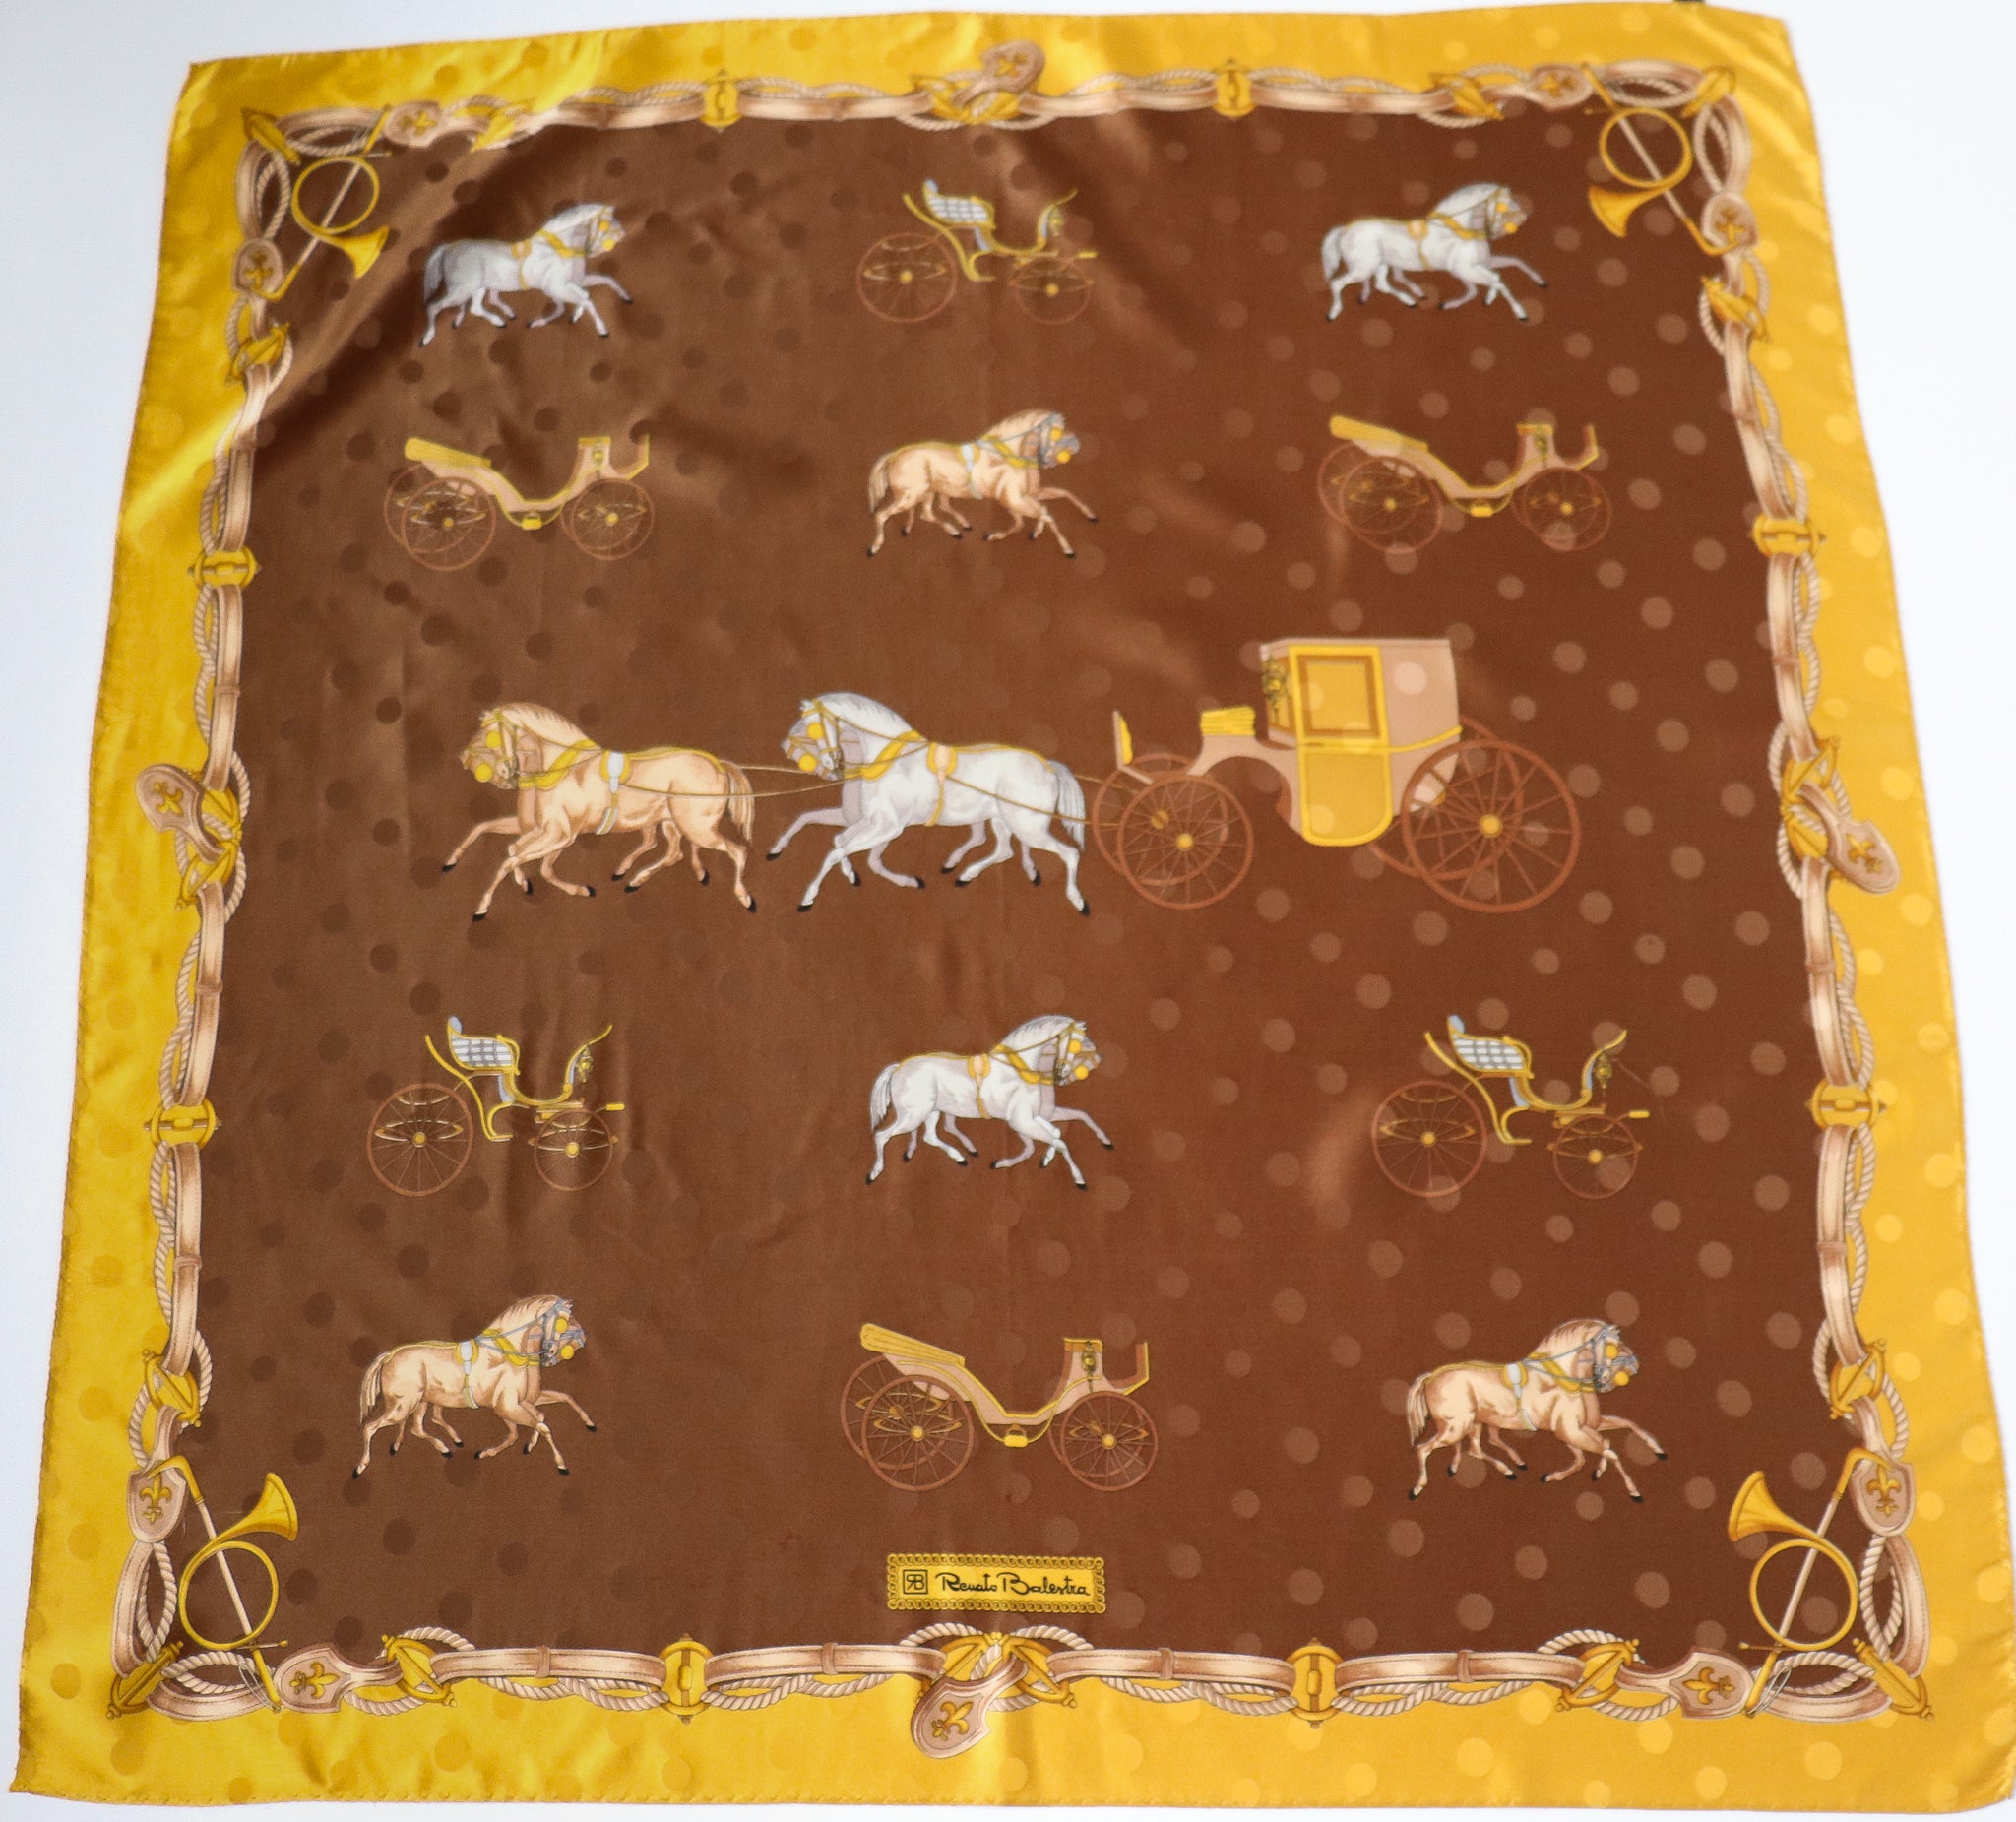 Renato Balestra Vintage Silk Scarf - Brown / Gold Horses and Carriages  - LARGE